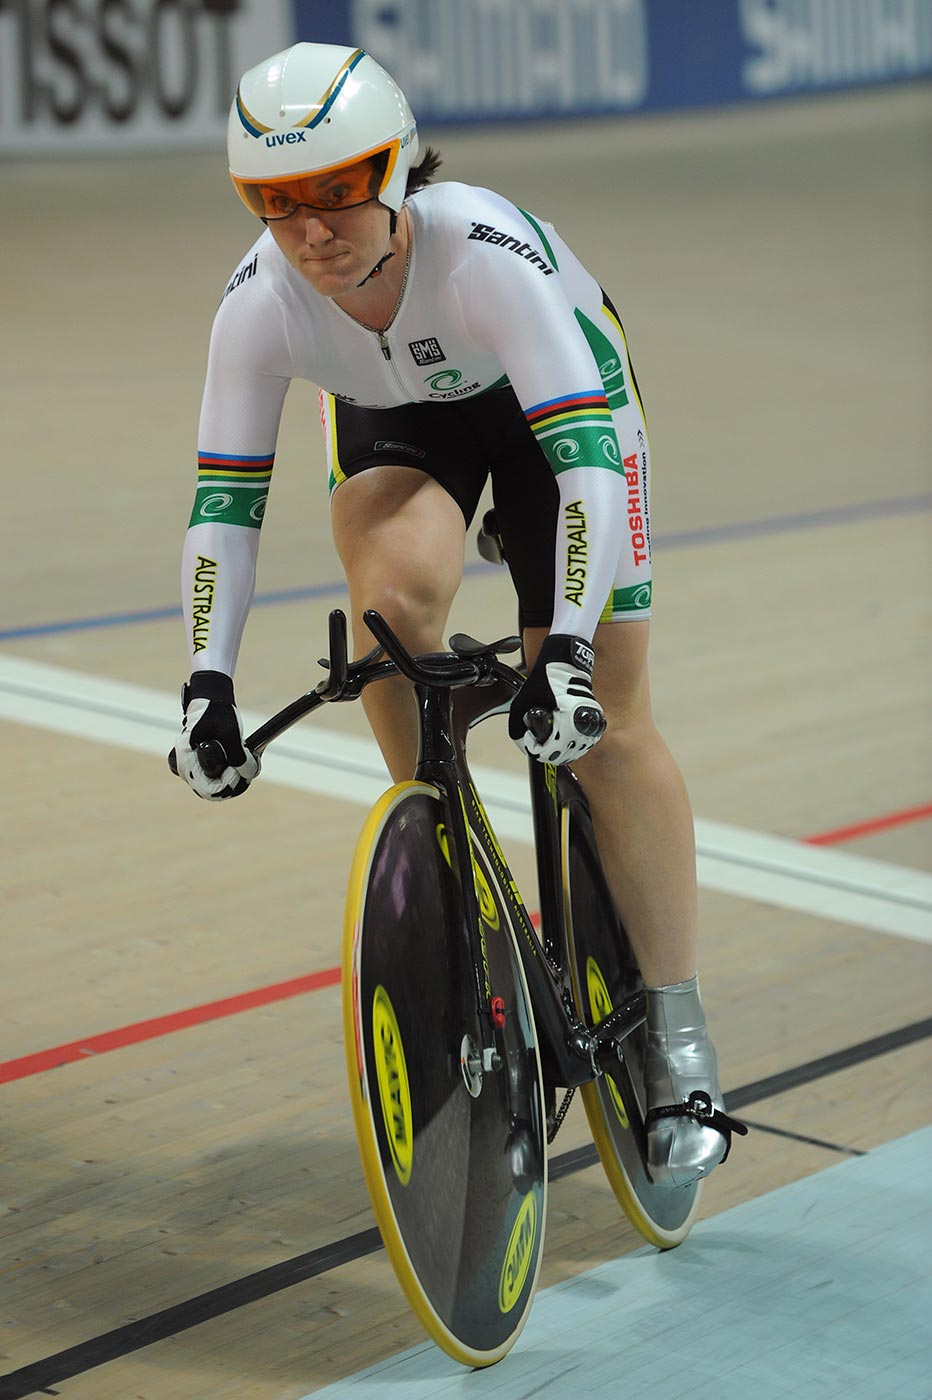 Anna Meares competing in the 500-metre time trial final at the World Track Championship in Poland, 2009. - click to view larger image